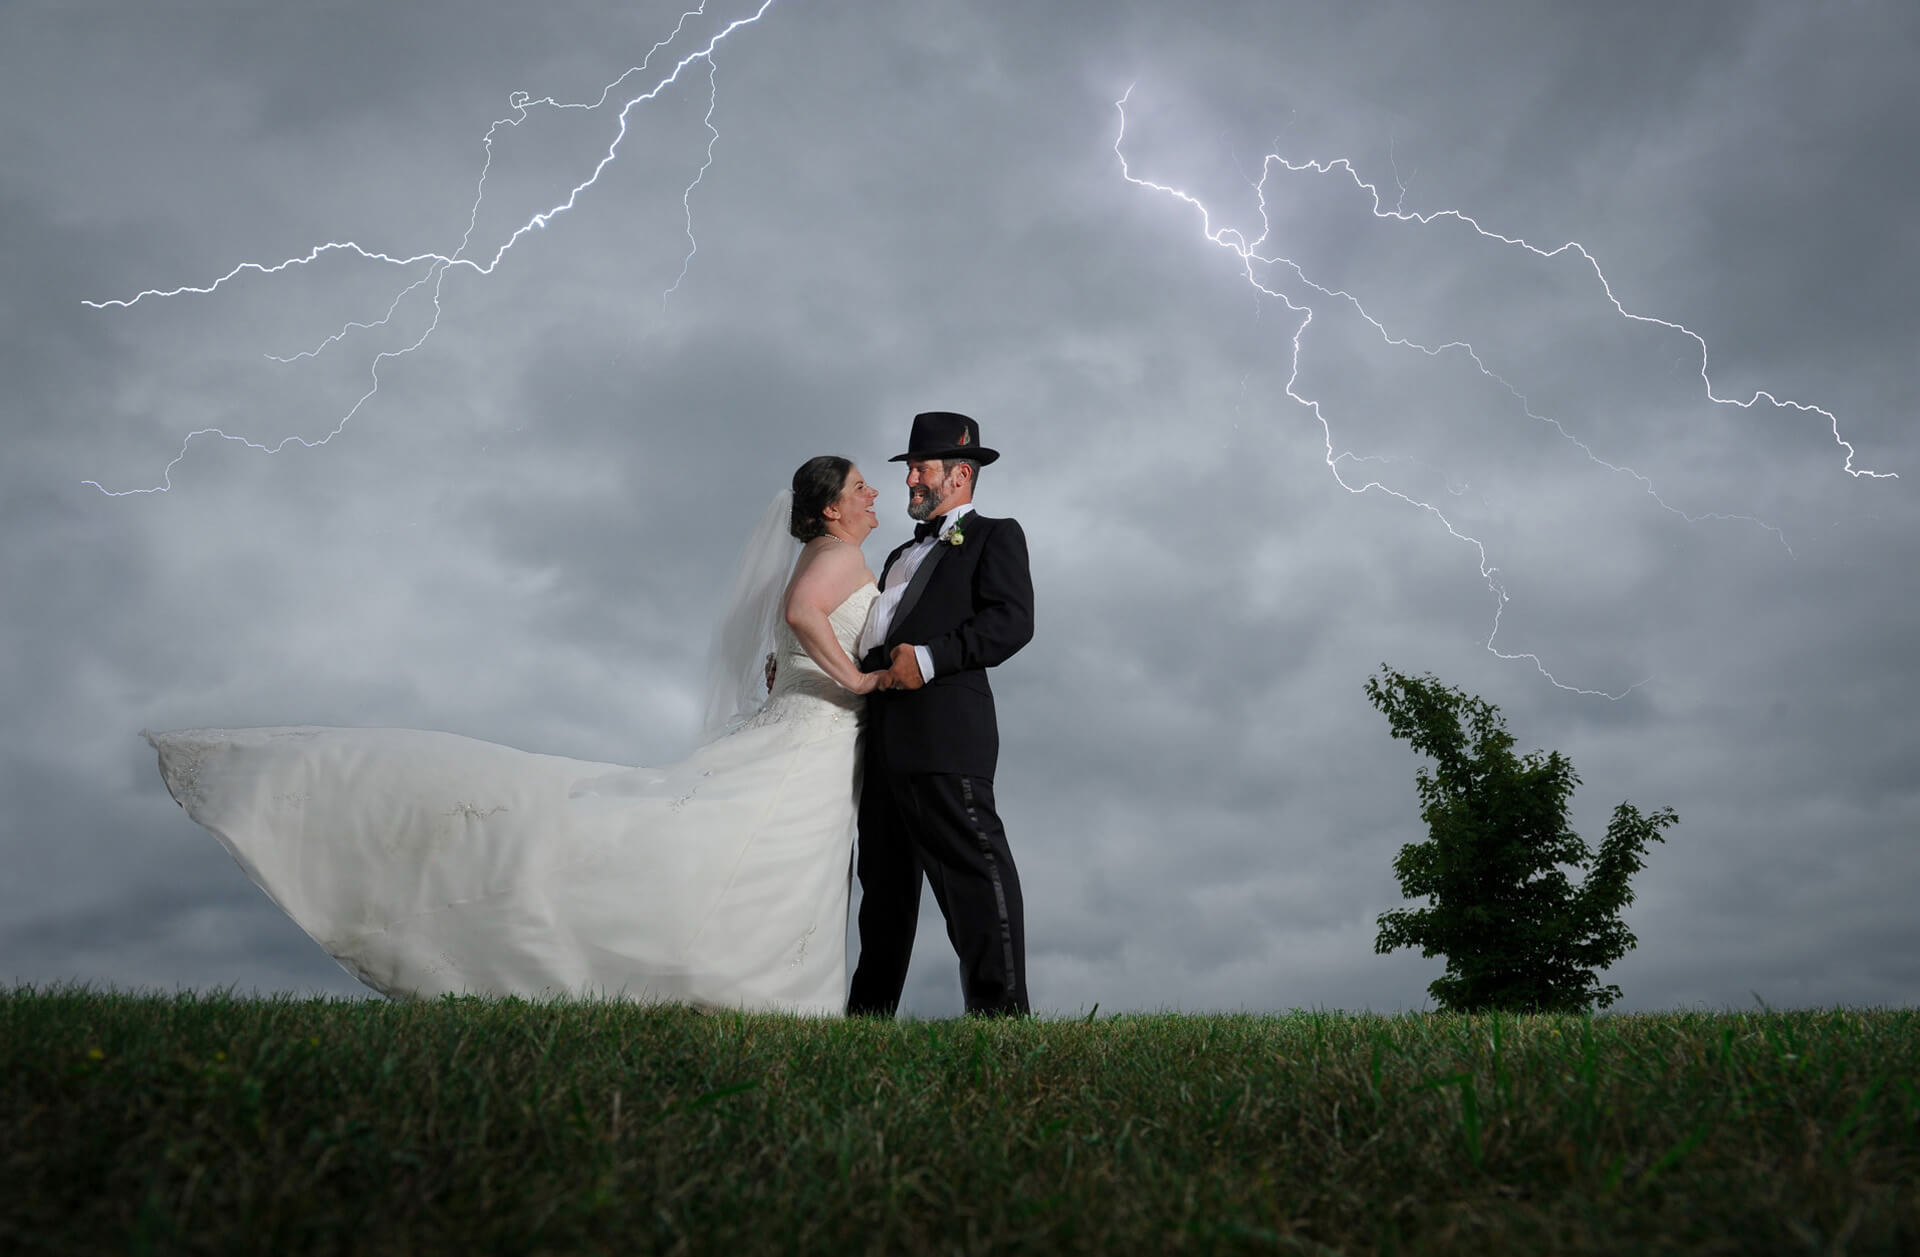 The bride and groom dance in the gathering storm at the Indian Springs Metropark in White Lake, Michigan.